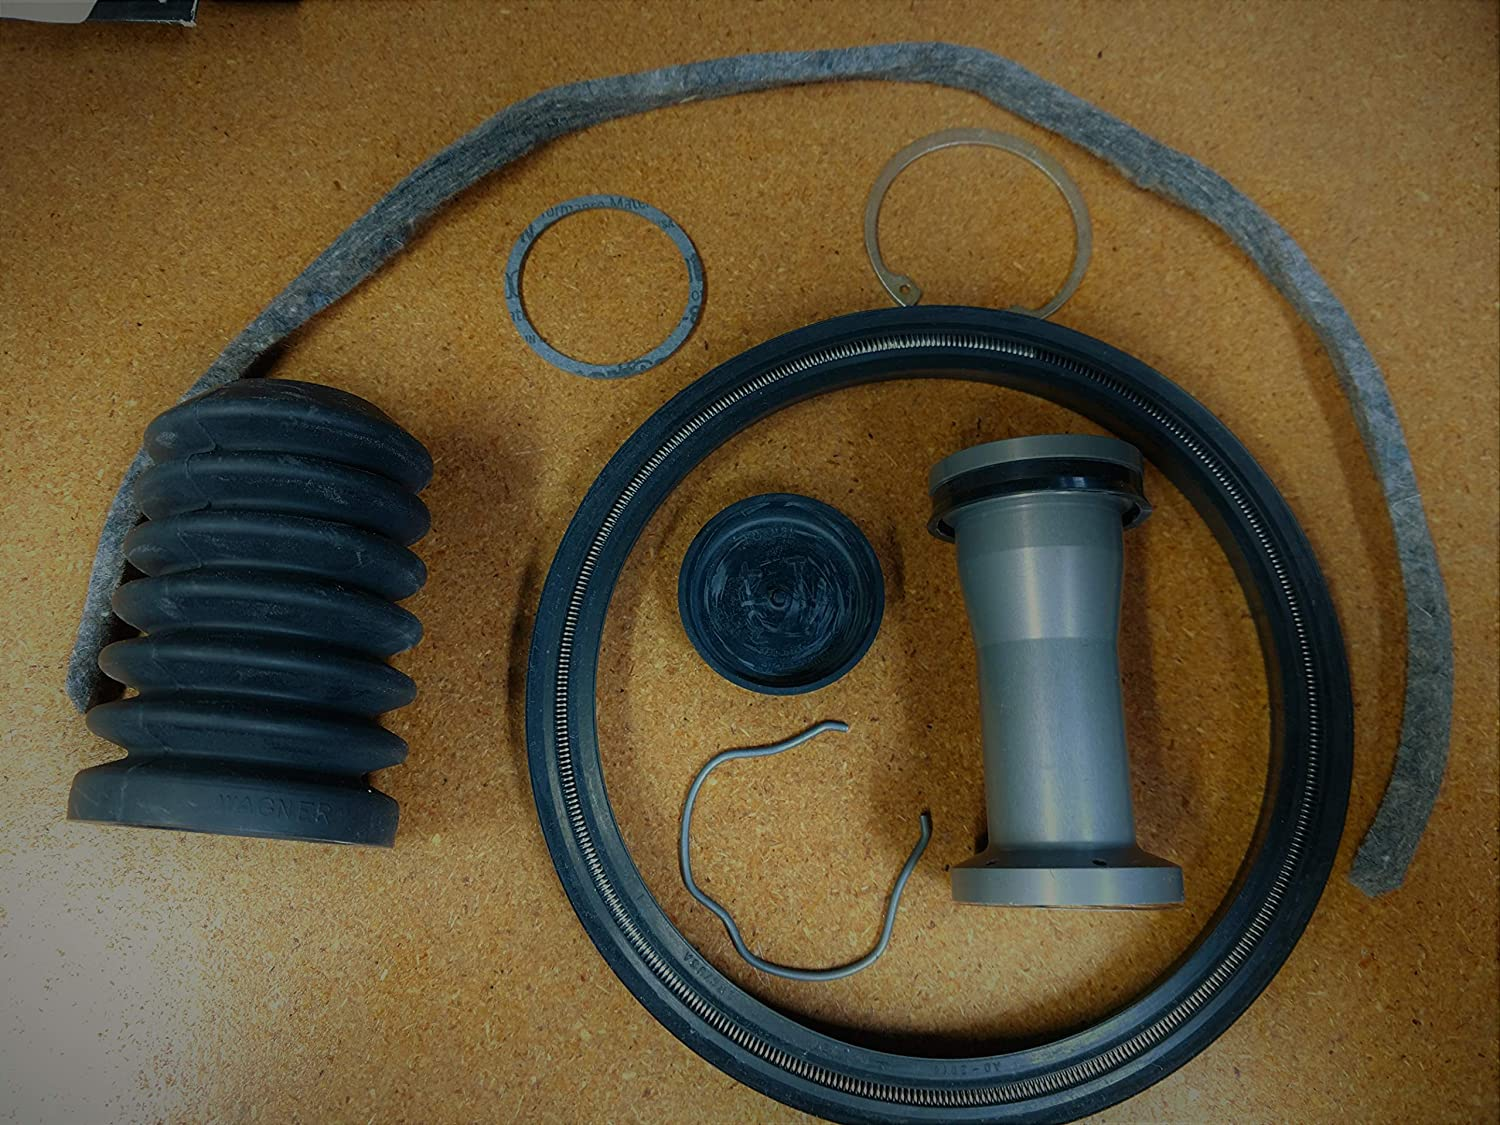 Wagner Repair Kit for Pressure Cluster A131023 Parts Included to